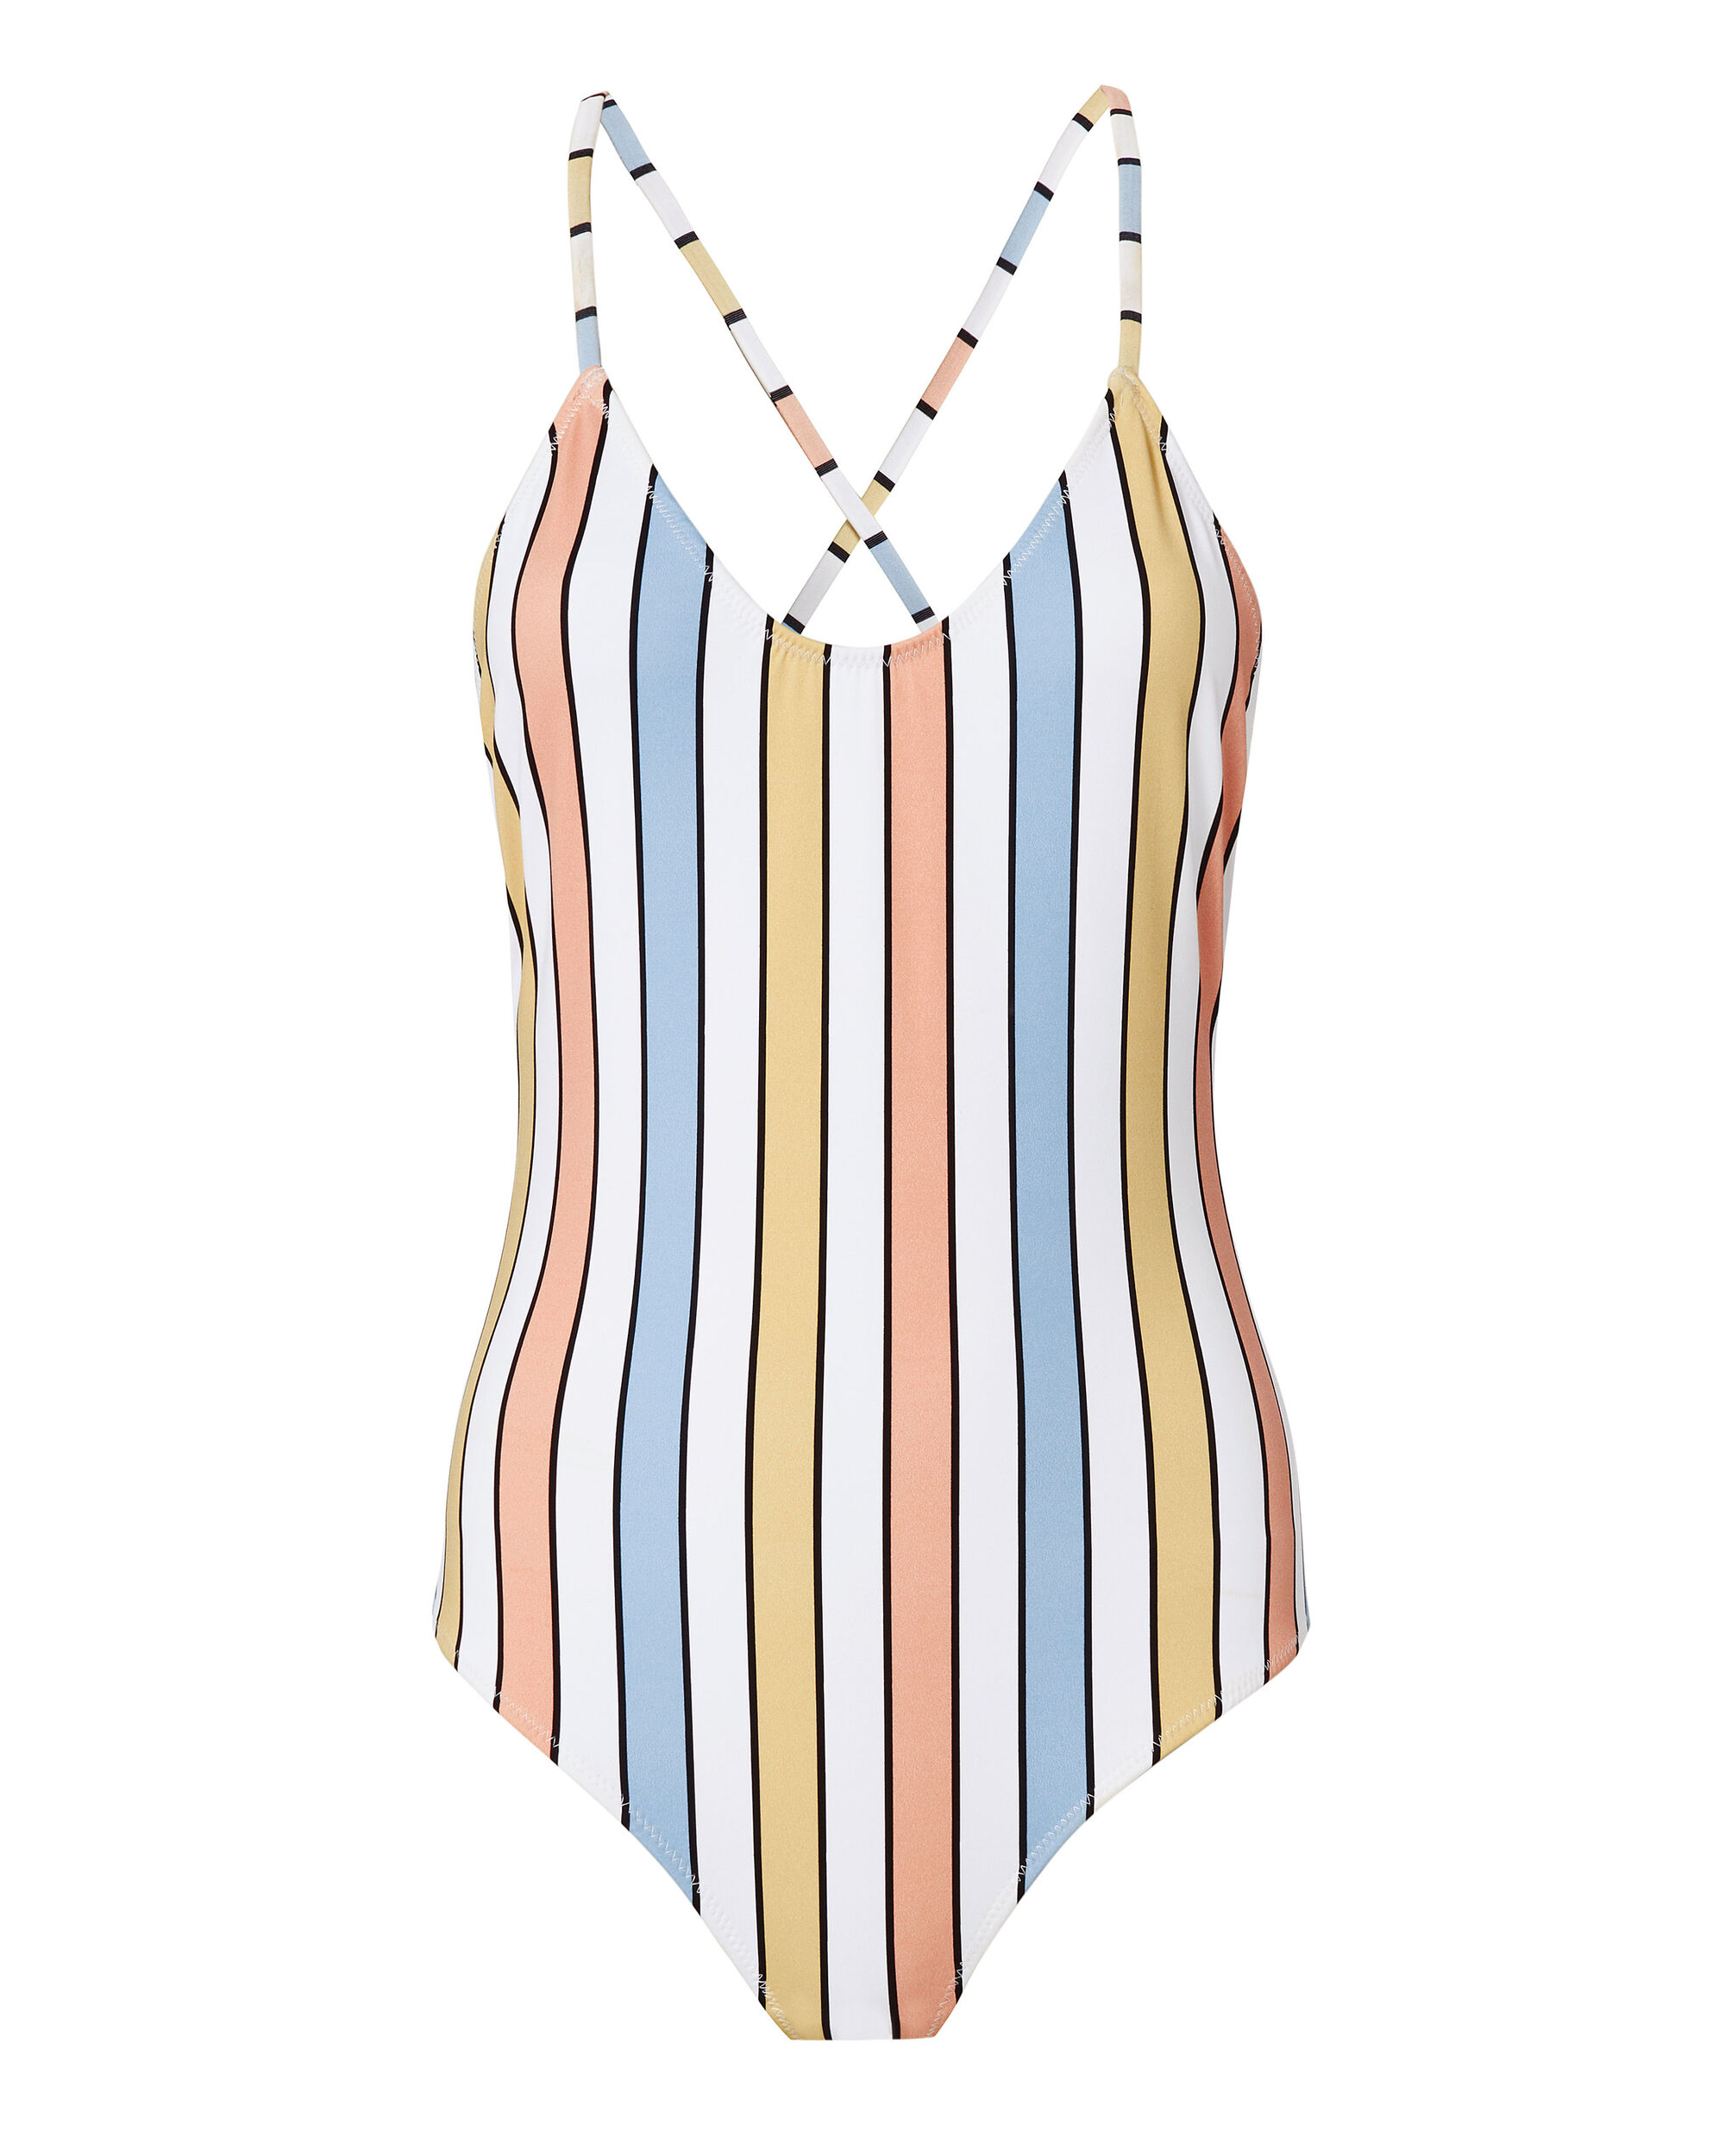 Delfina Striped One Piece Swimsuit, PATTERN, hi-res